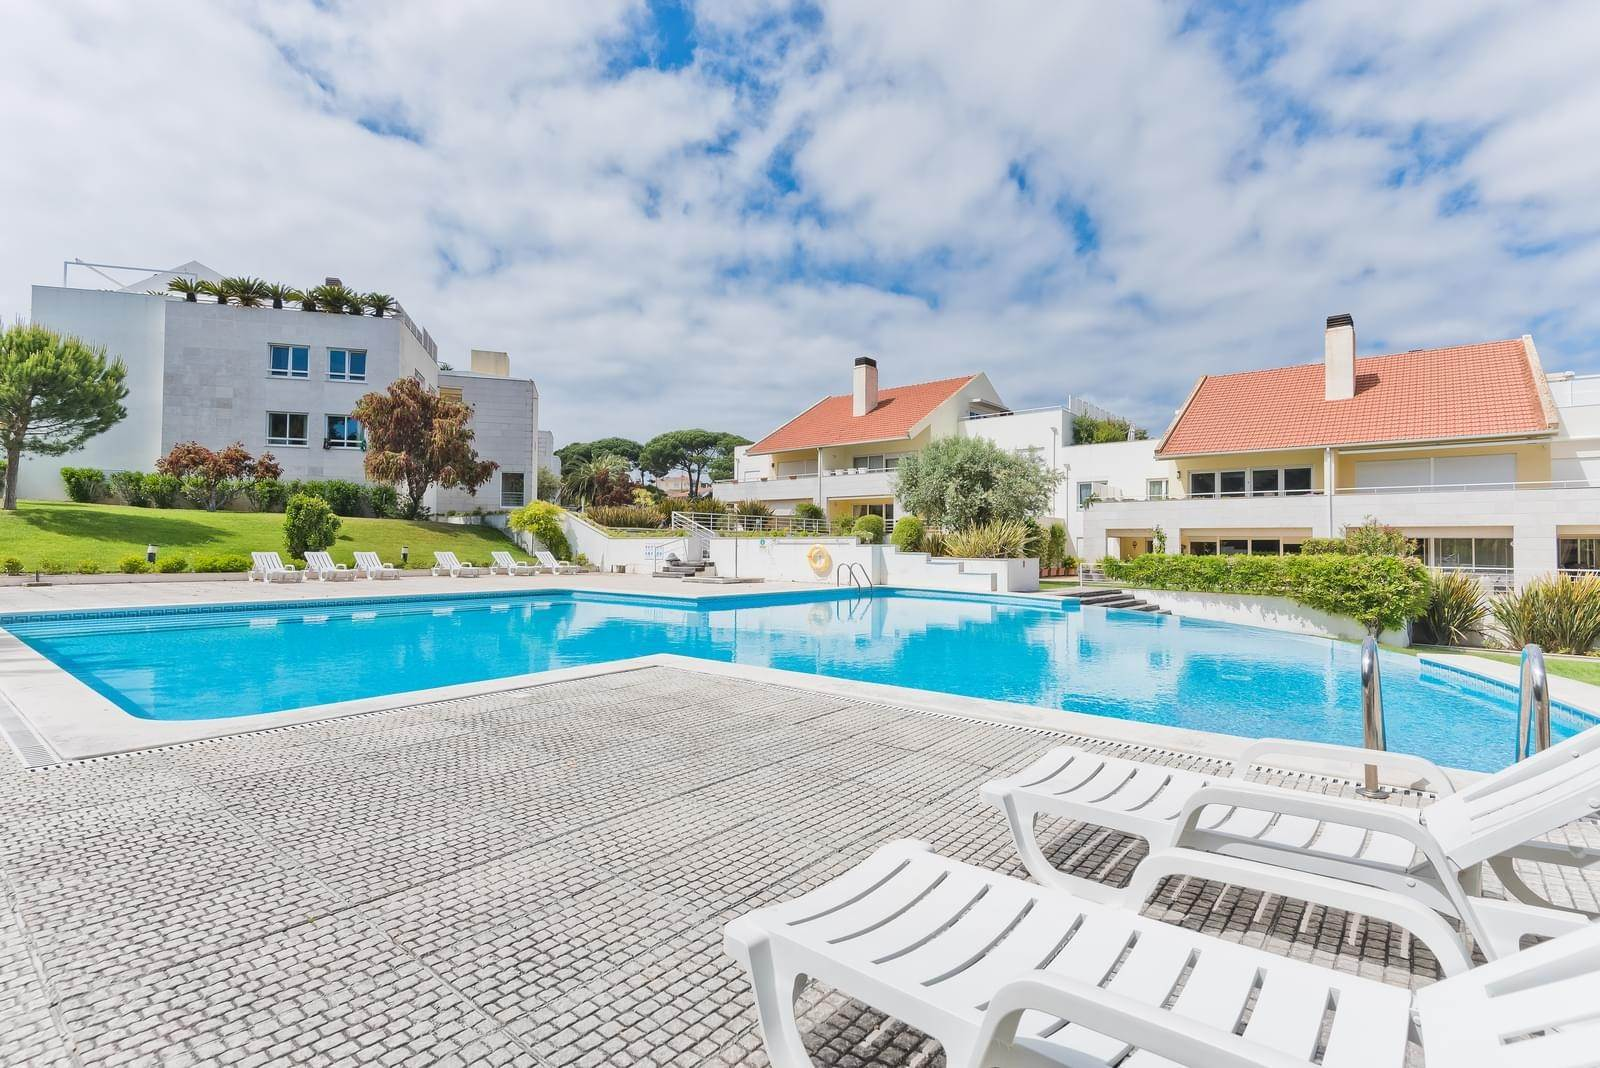 26. Appartamenti per Vendita alle ore 3+1 bedroom apartment in Bicesse, Cascais, placed in a private condominium.The apartment, with 215 sqm and a 111 sqm ter... Cascais, Portogallo